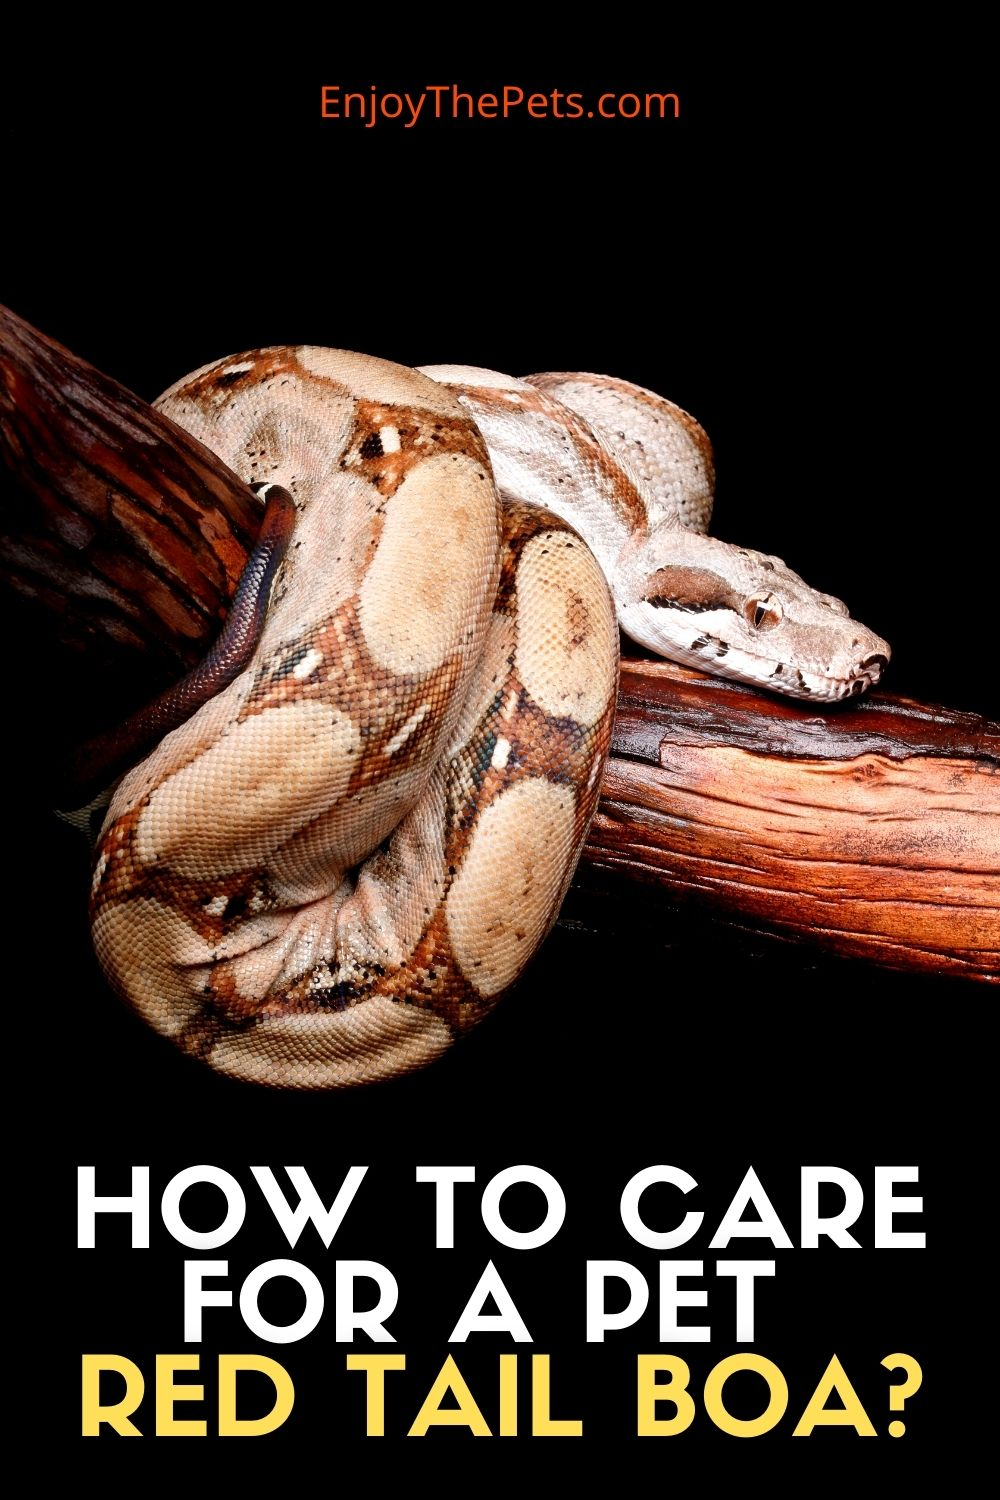 HOW TO CARE FOR A PET RED TAIL BOA_